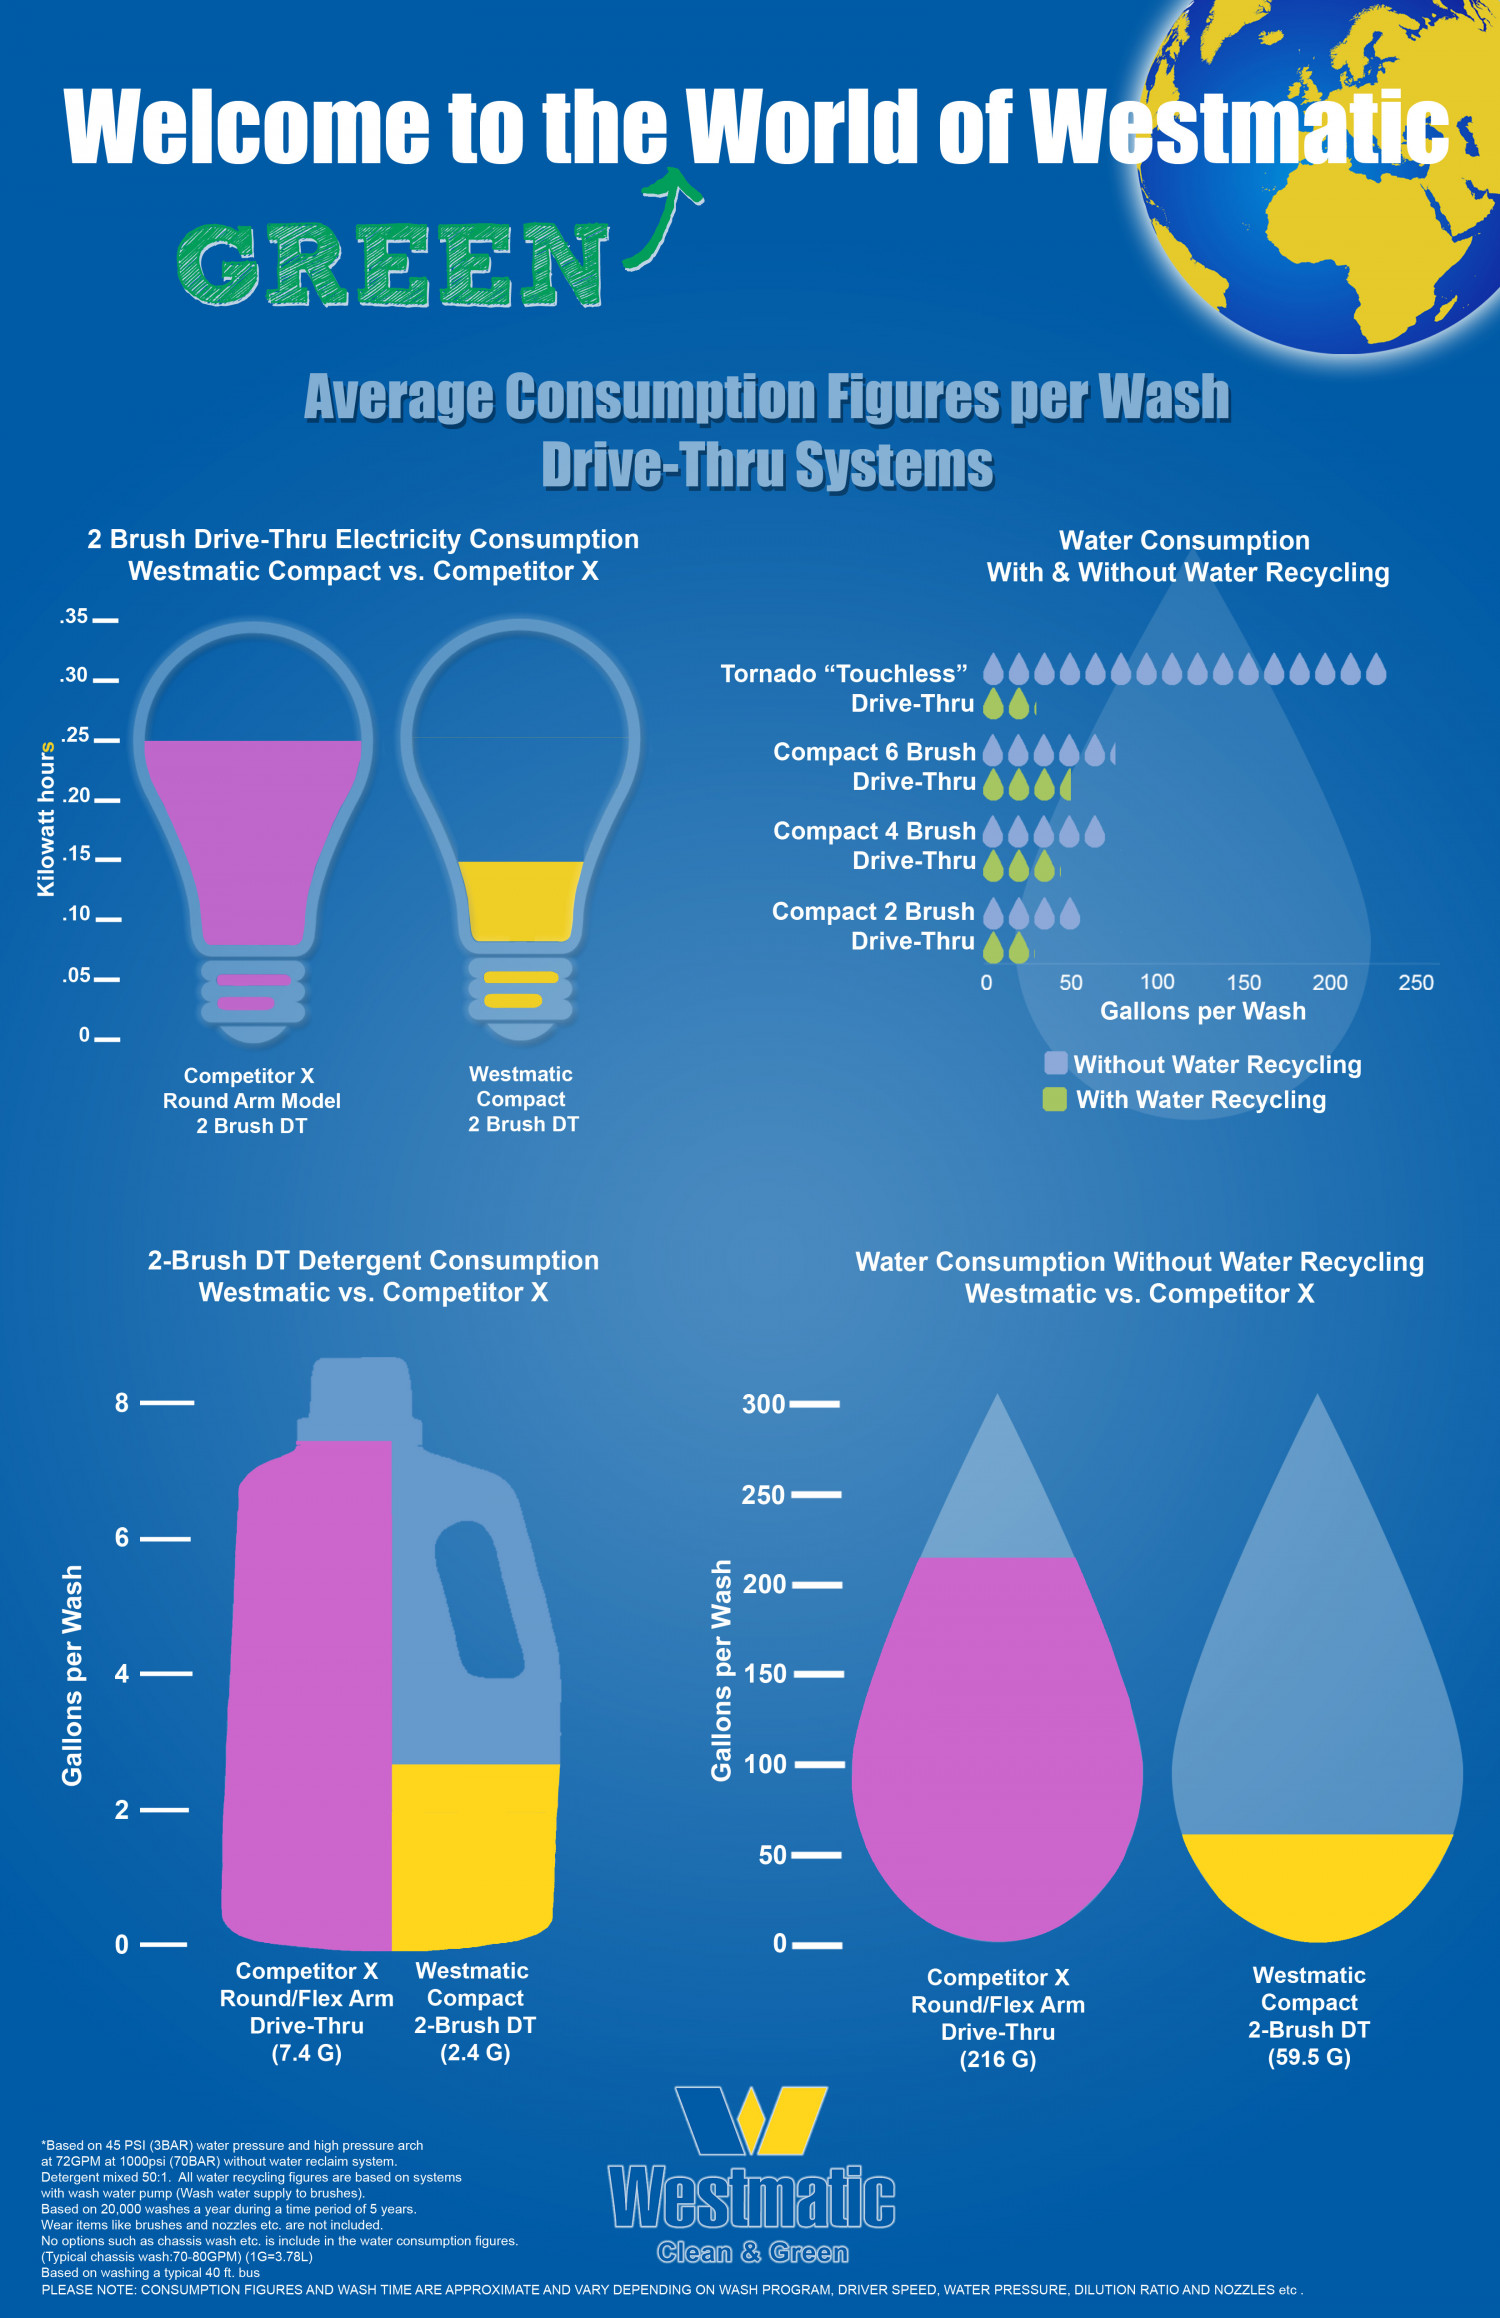 Westmatic Drive-Thru Systems Average Consumption Figures Infographic